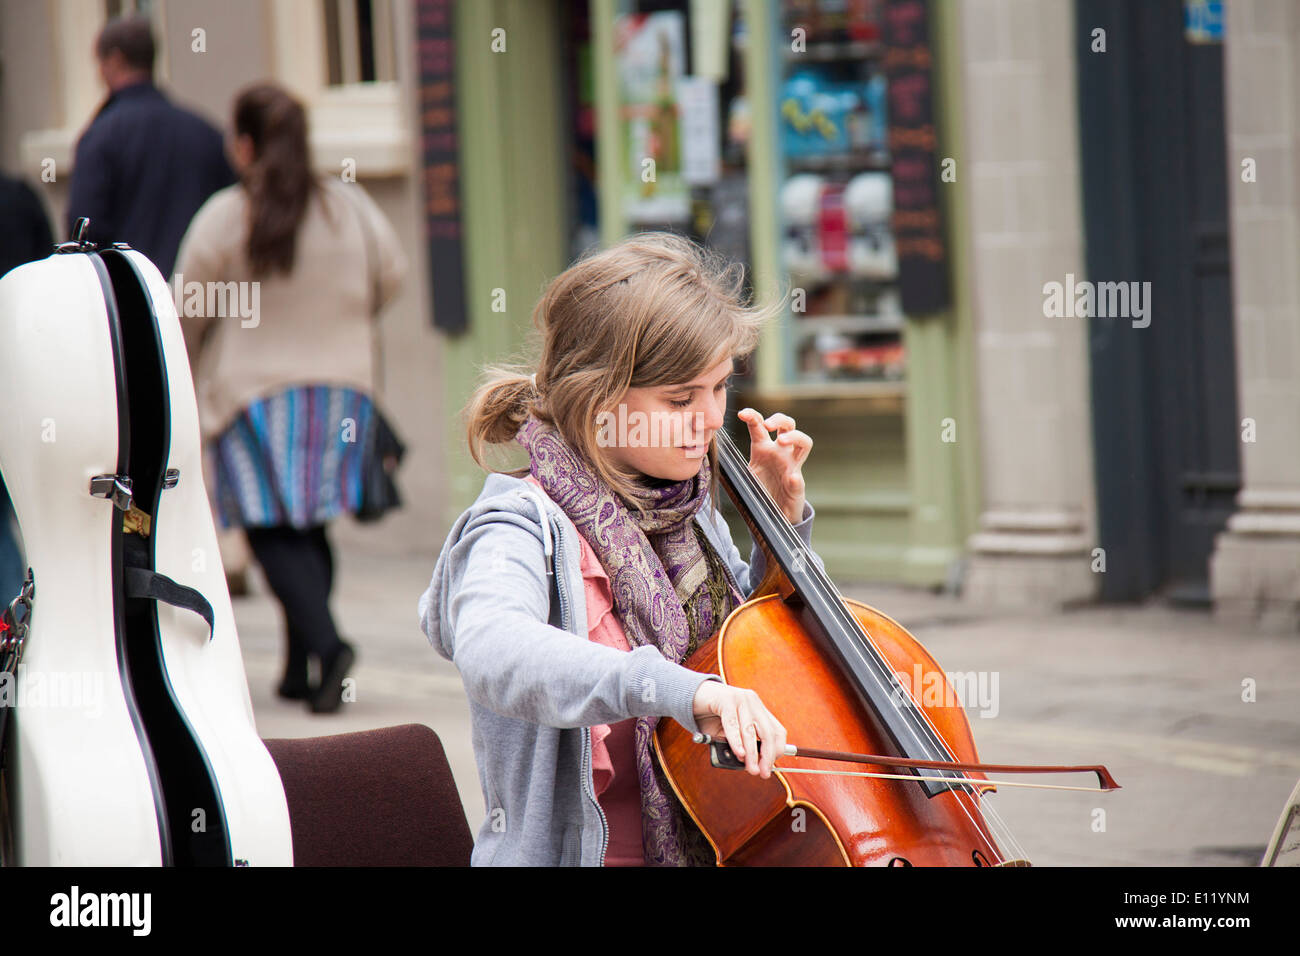 A young lady plays cello to raise money for charity in the centre of York, England. - Stock Image